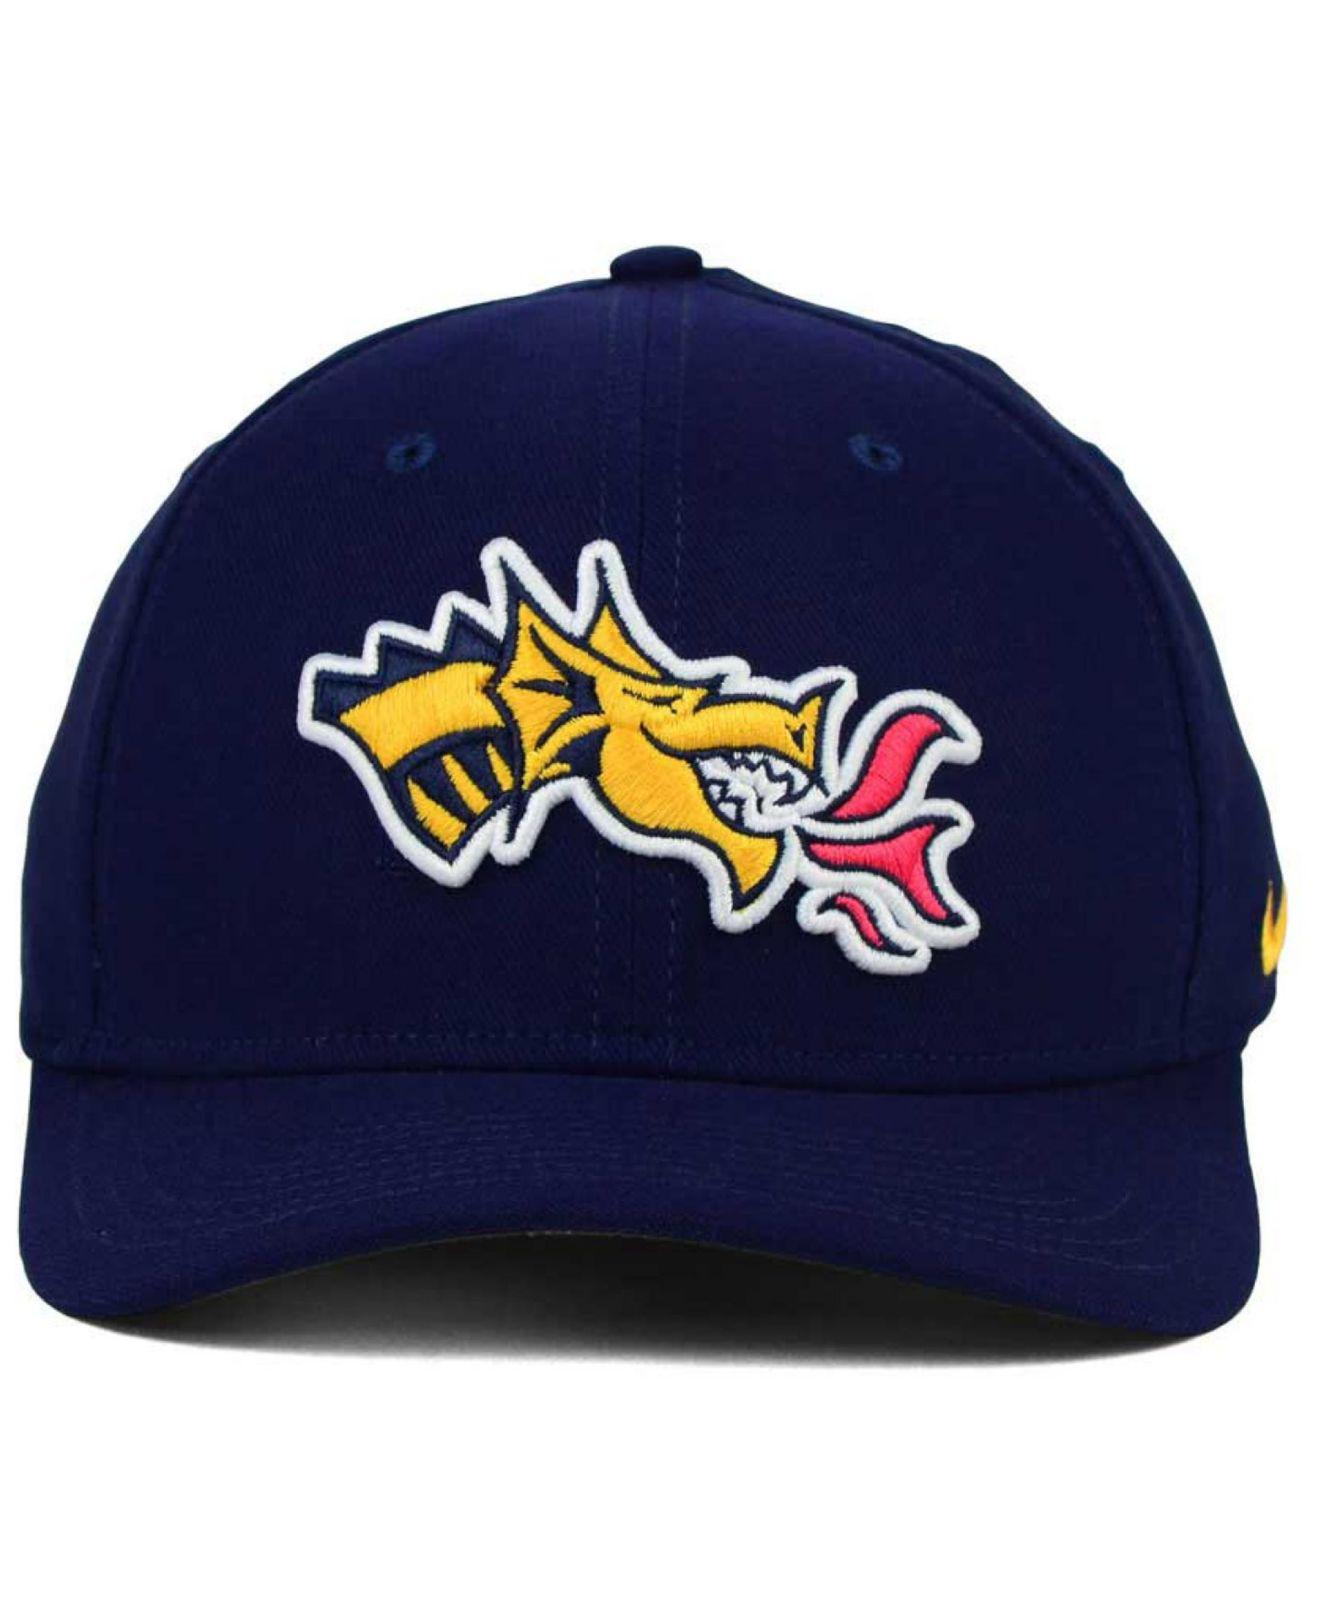 finest selection 5991d 2ceb1 free shipping connecticut huskies nike ncaa womens seasonal h86 cap  zlyhhrur f4050 01b2f  canada lyst nike drexel dragons classic swoosh cap in  blue for men ...